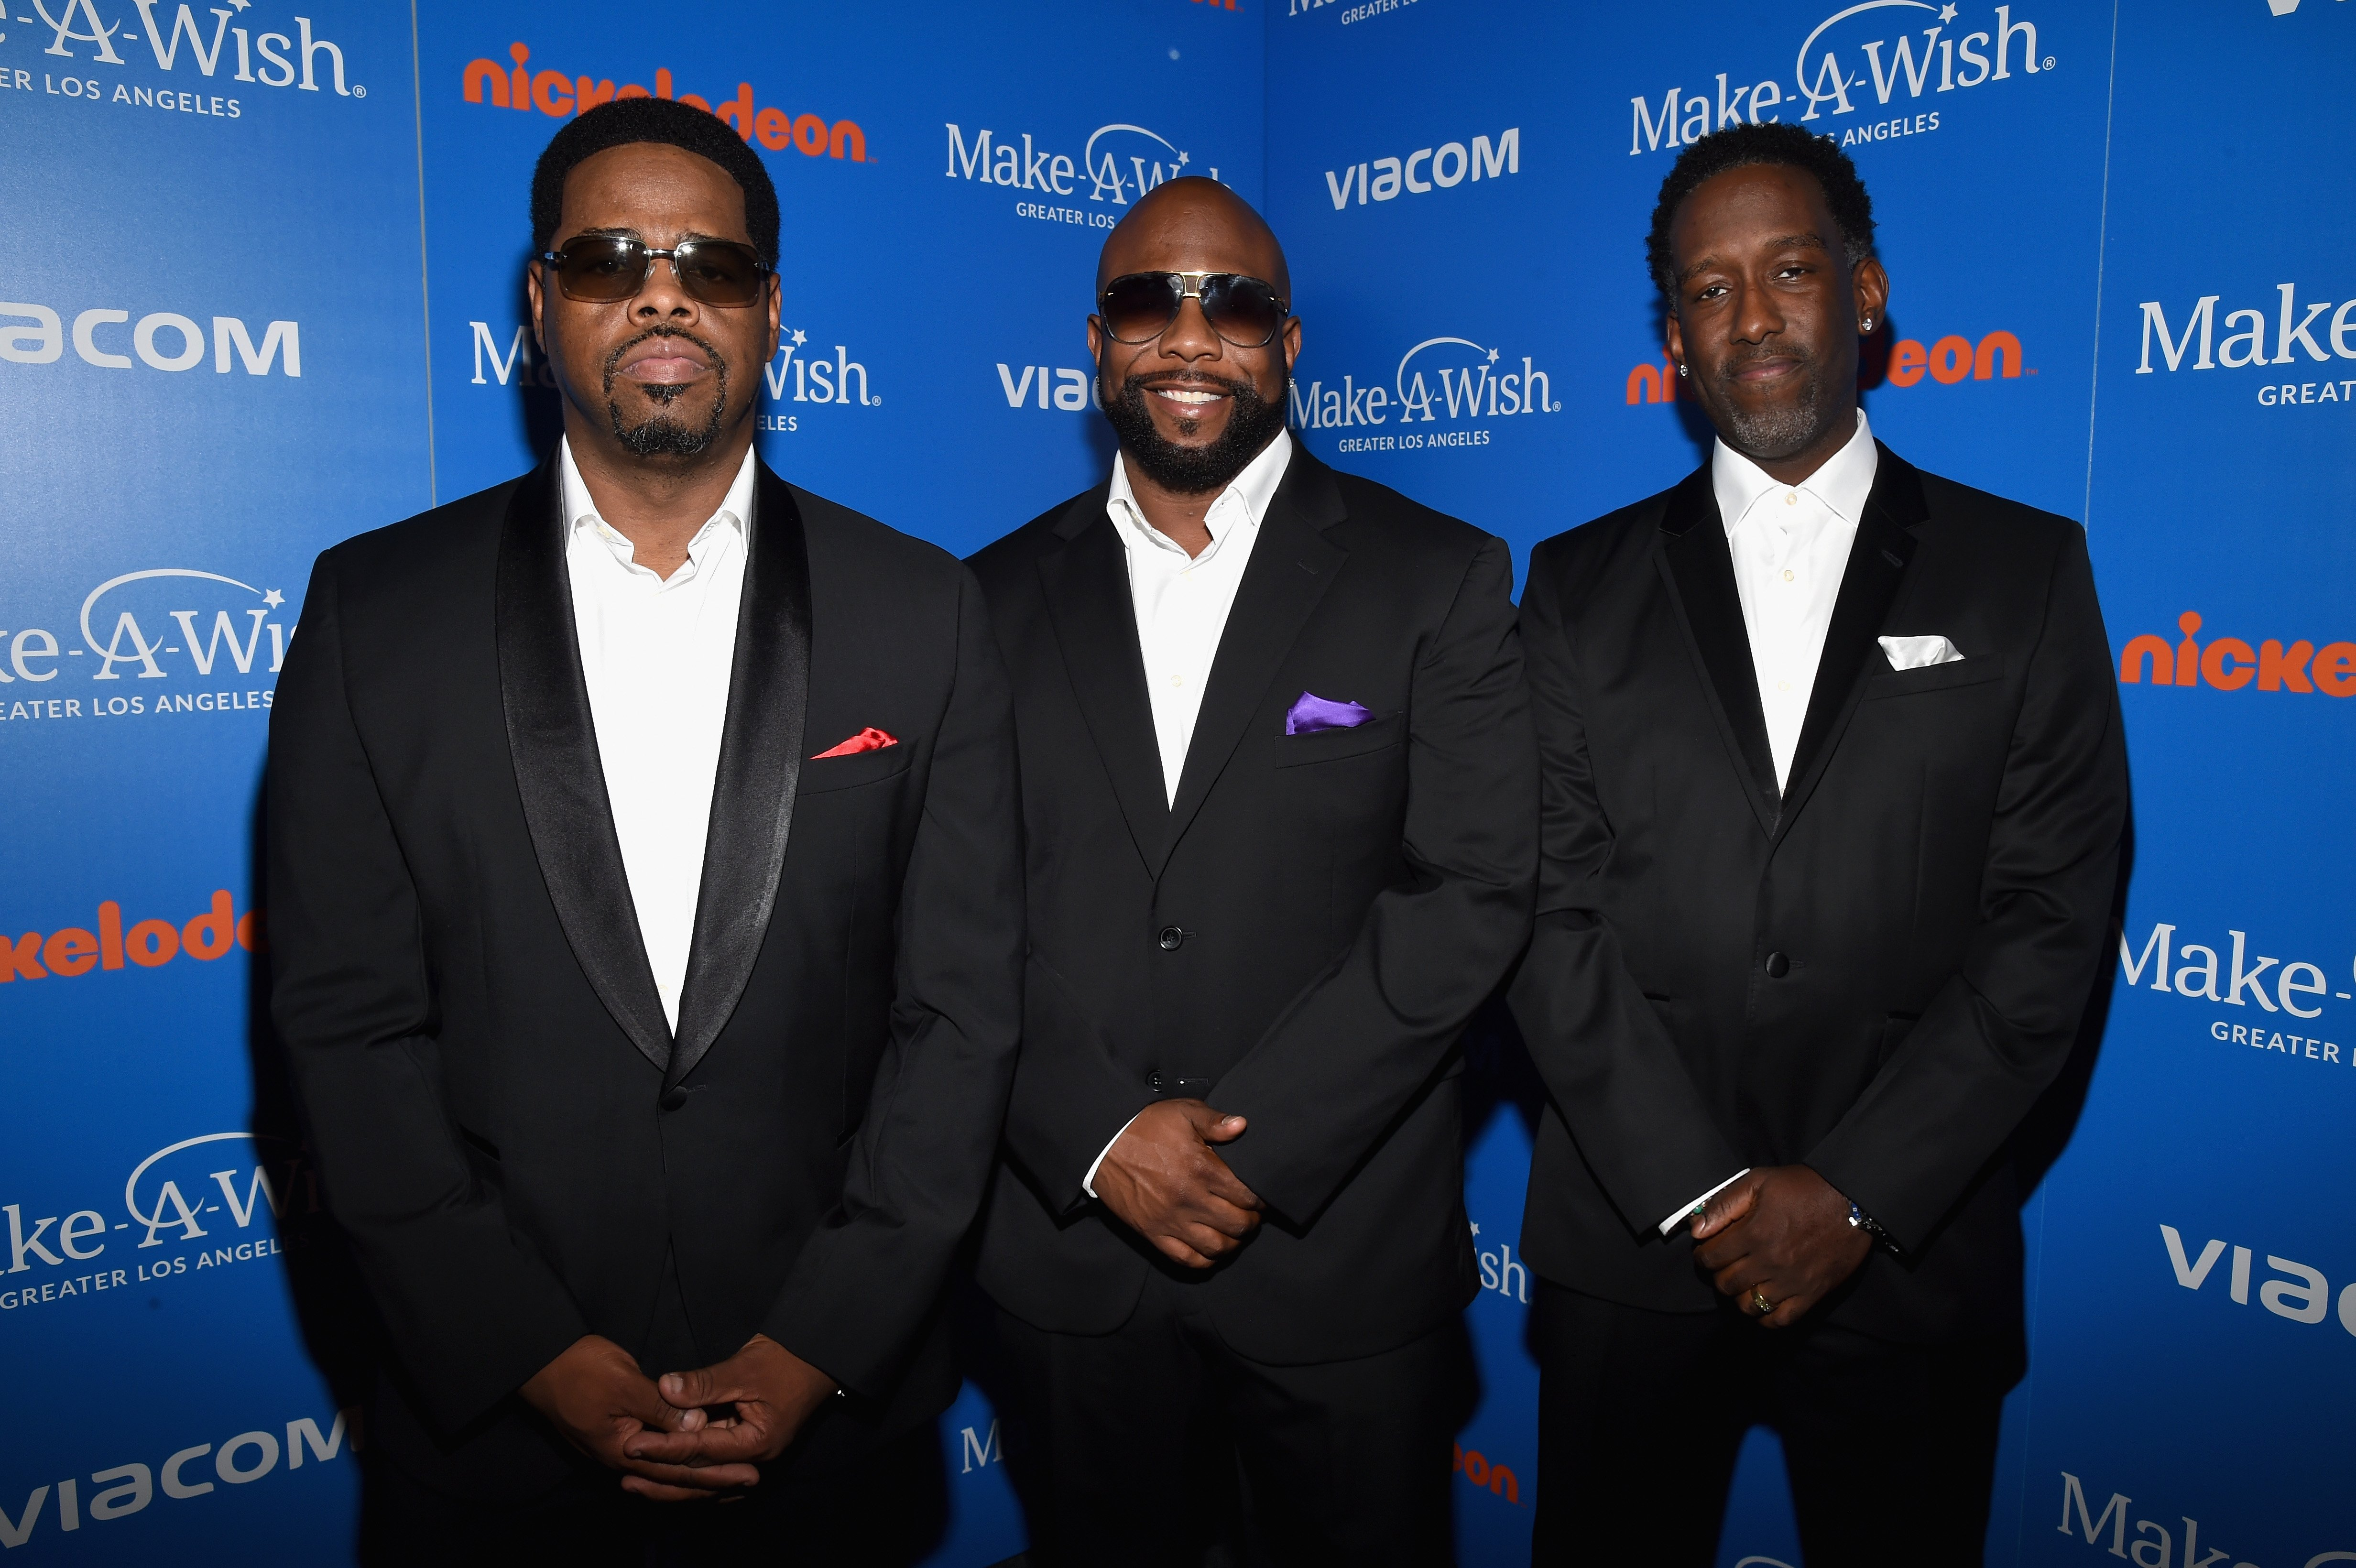 Nathan Morris, Wanya Morris and Shawn Stockman of the group Boyz II Men attend the 2018 Make A Wish Gala at The Beverly Hilton Hotel on October 24, 2018, in Beverly Hills, California. | Source: Getty Images.